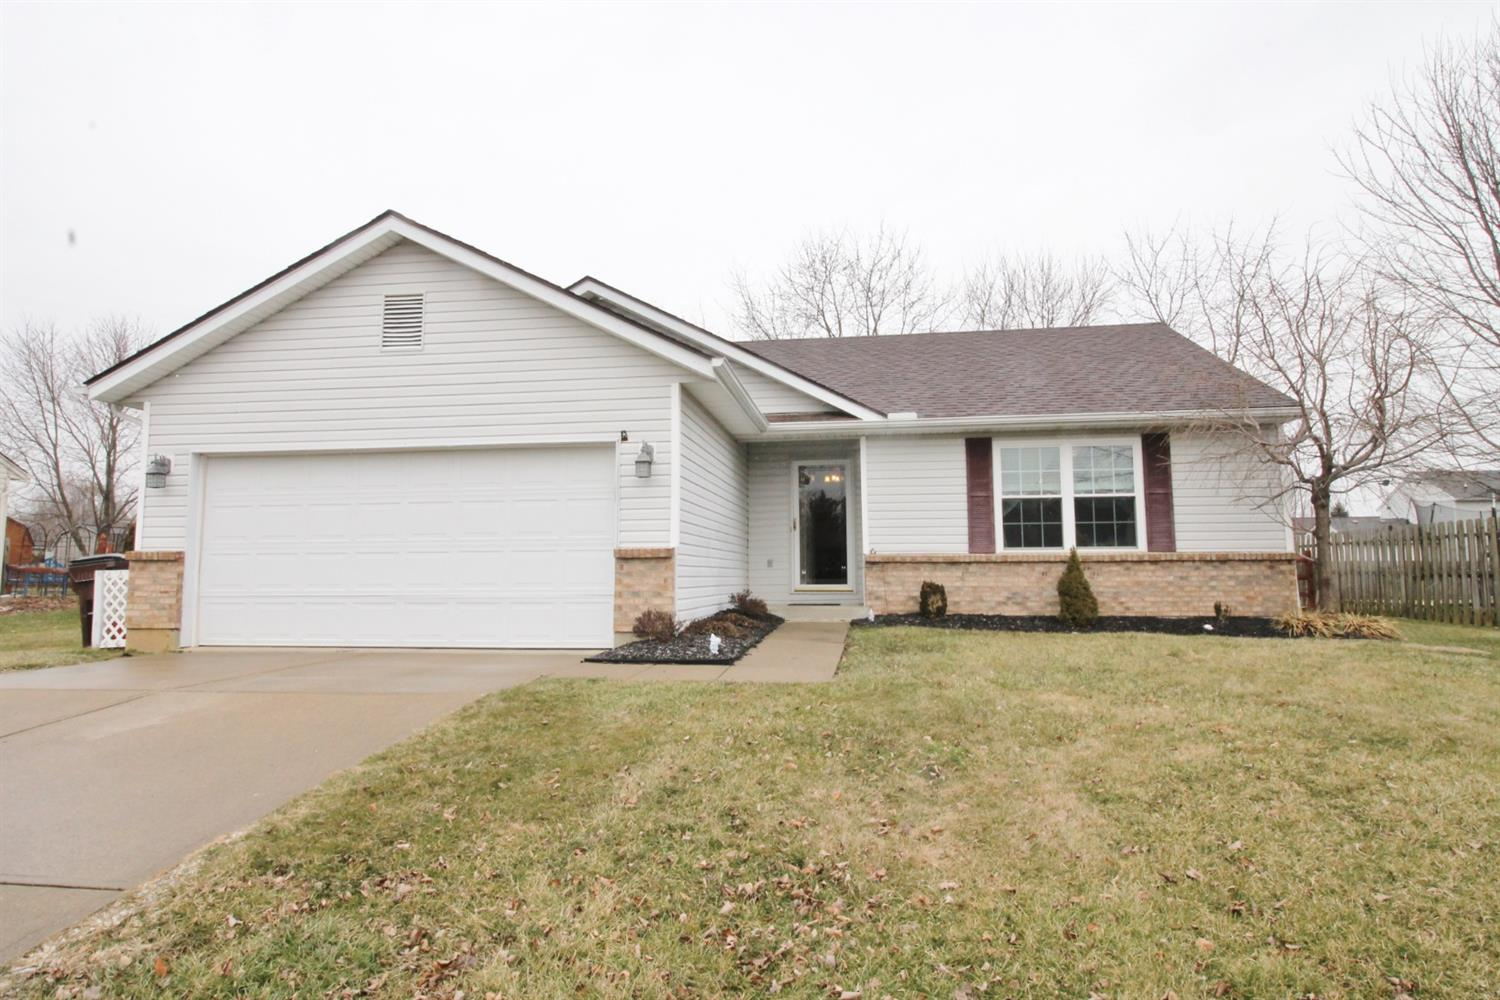 Property for sale at 12 Robin Way, Amelia,  OH 45102